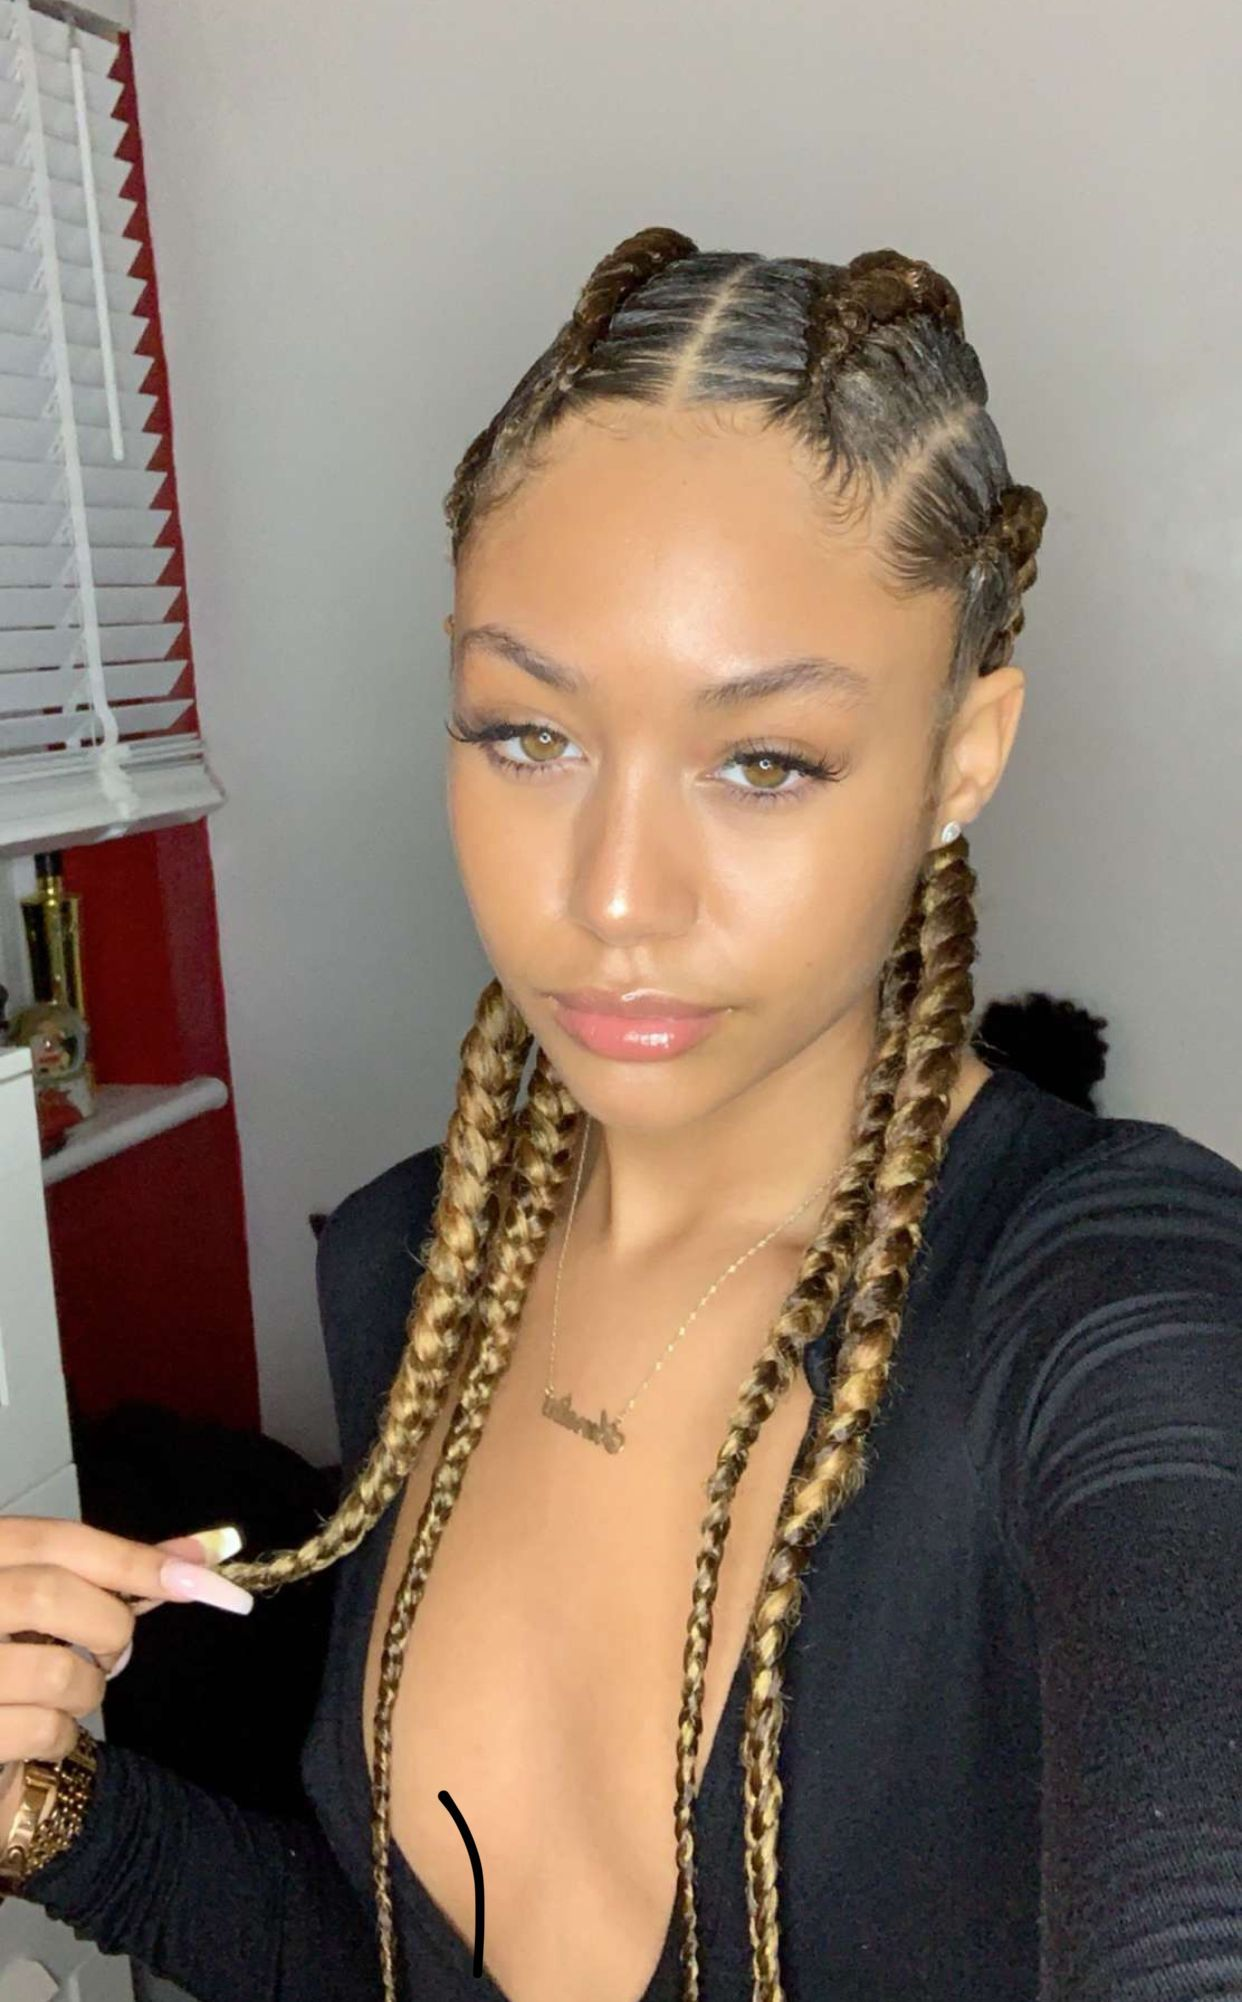 Pin By Andrea Piesz On Hairstyles Two Braids Hairstyle Black Women Braids For Black Hair African Braids Hairstyles